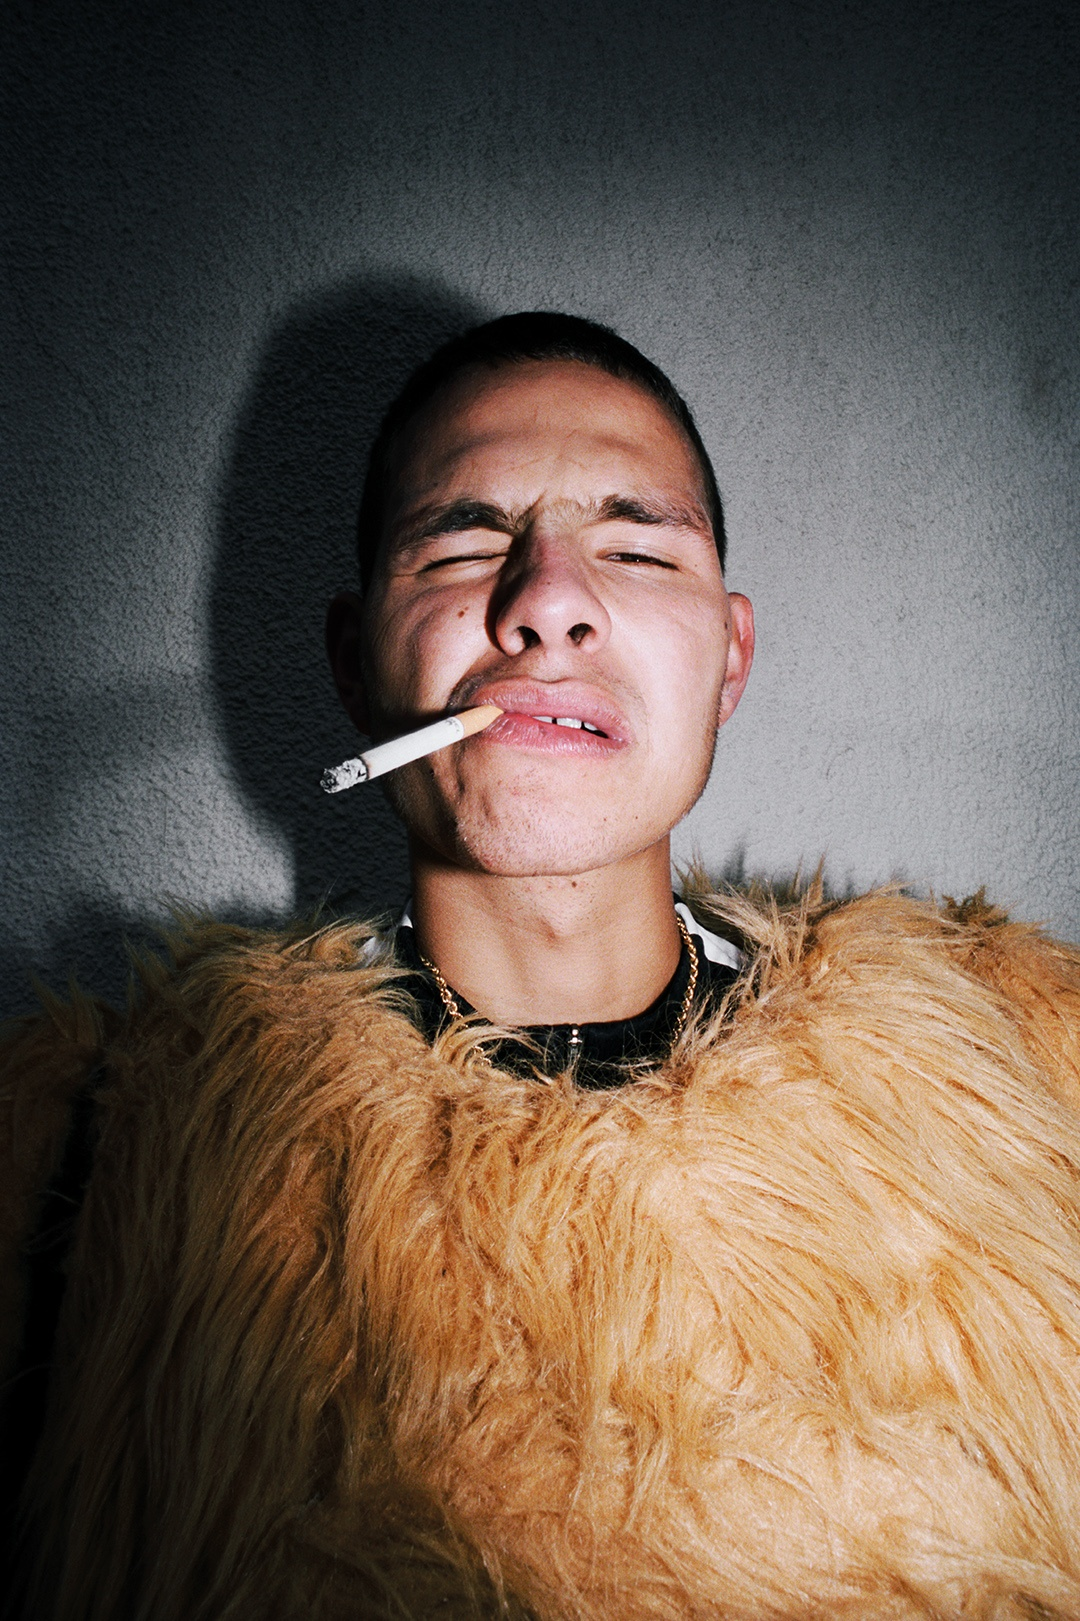 slowthai © Joshua Gordon